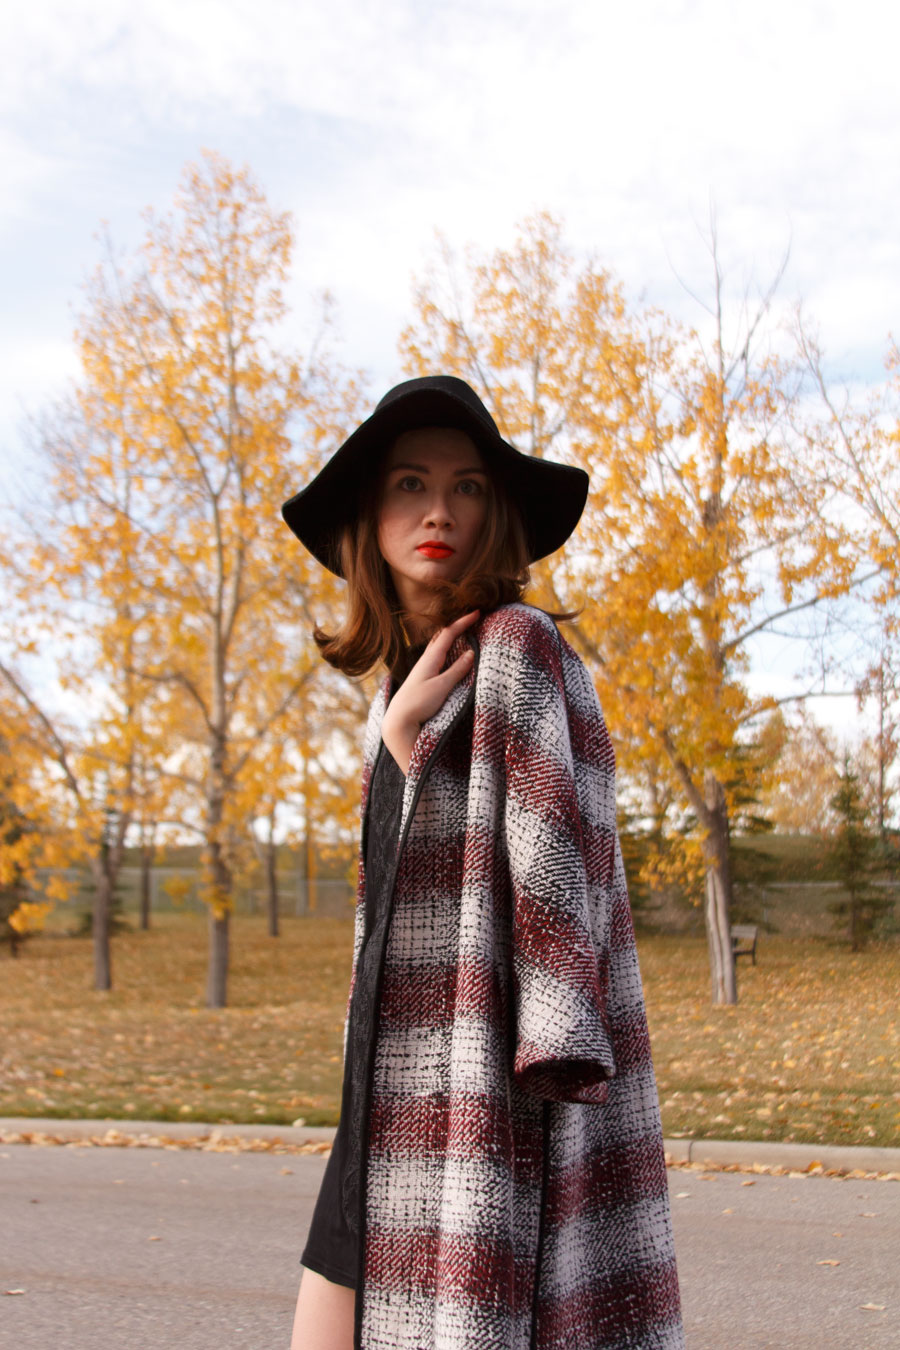 trapeze coat, checked coat, fall fashion, autumn fashion, baroque trend, embellished dress, floppy hat